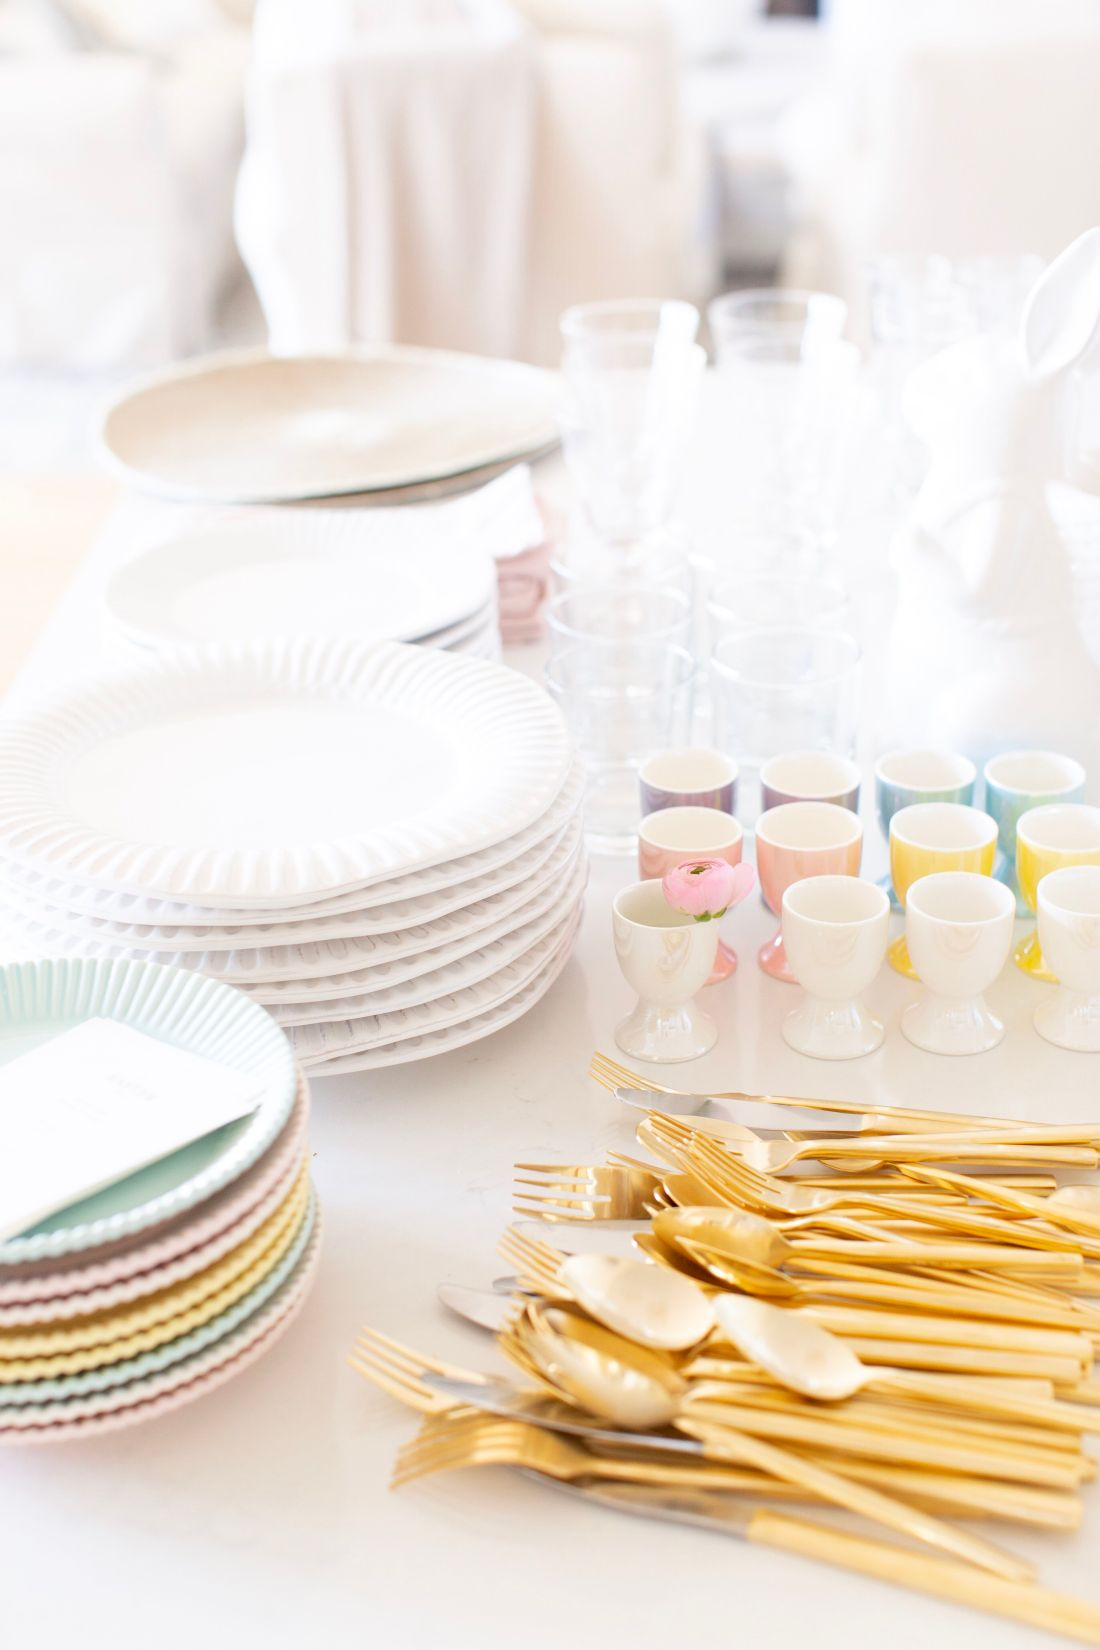 Easter dinner preparation with pastel egg cups and gold flatware